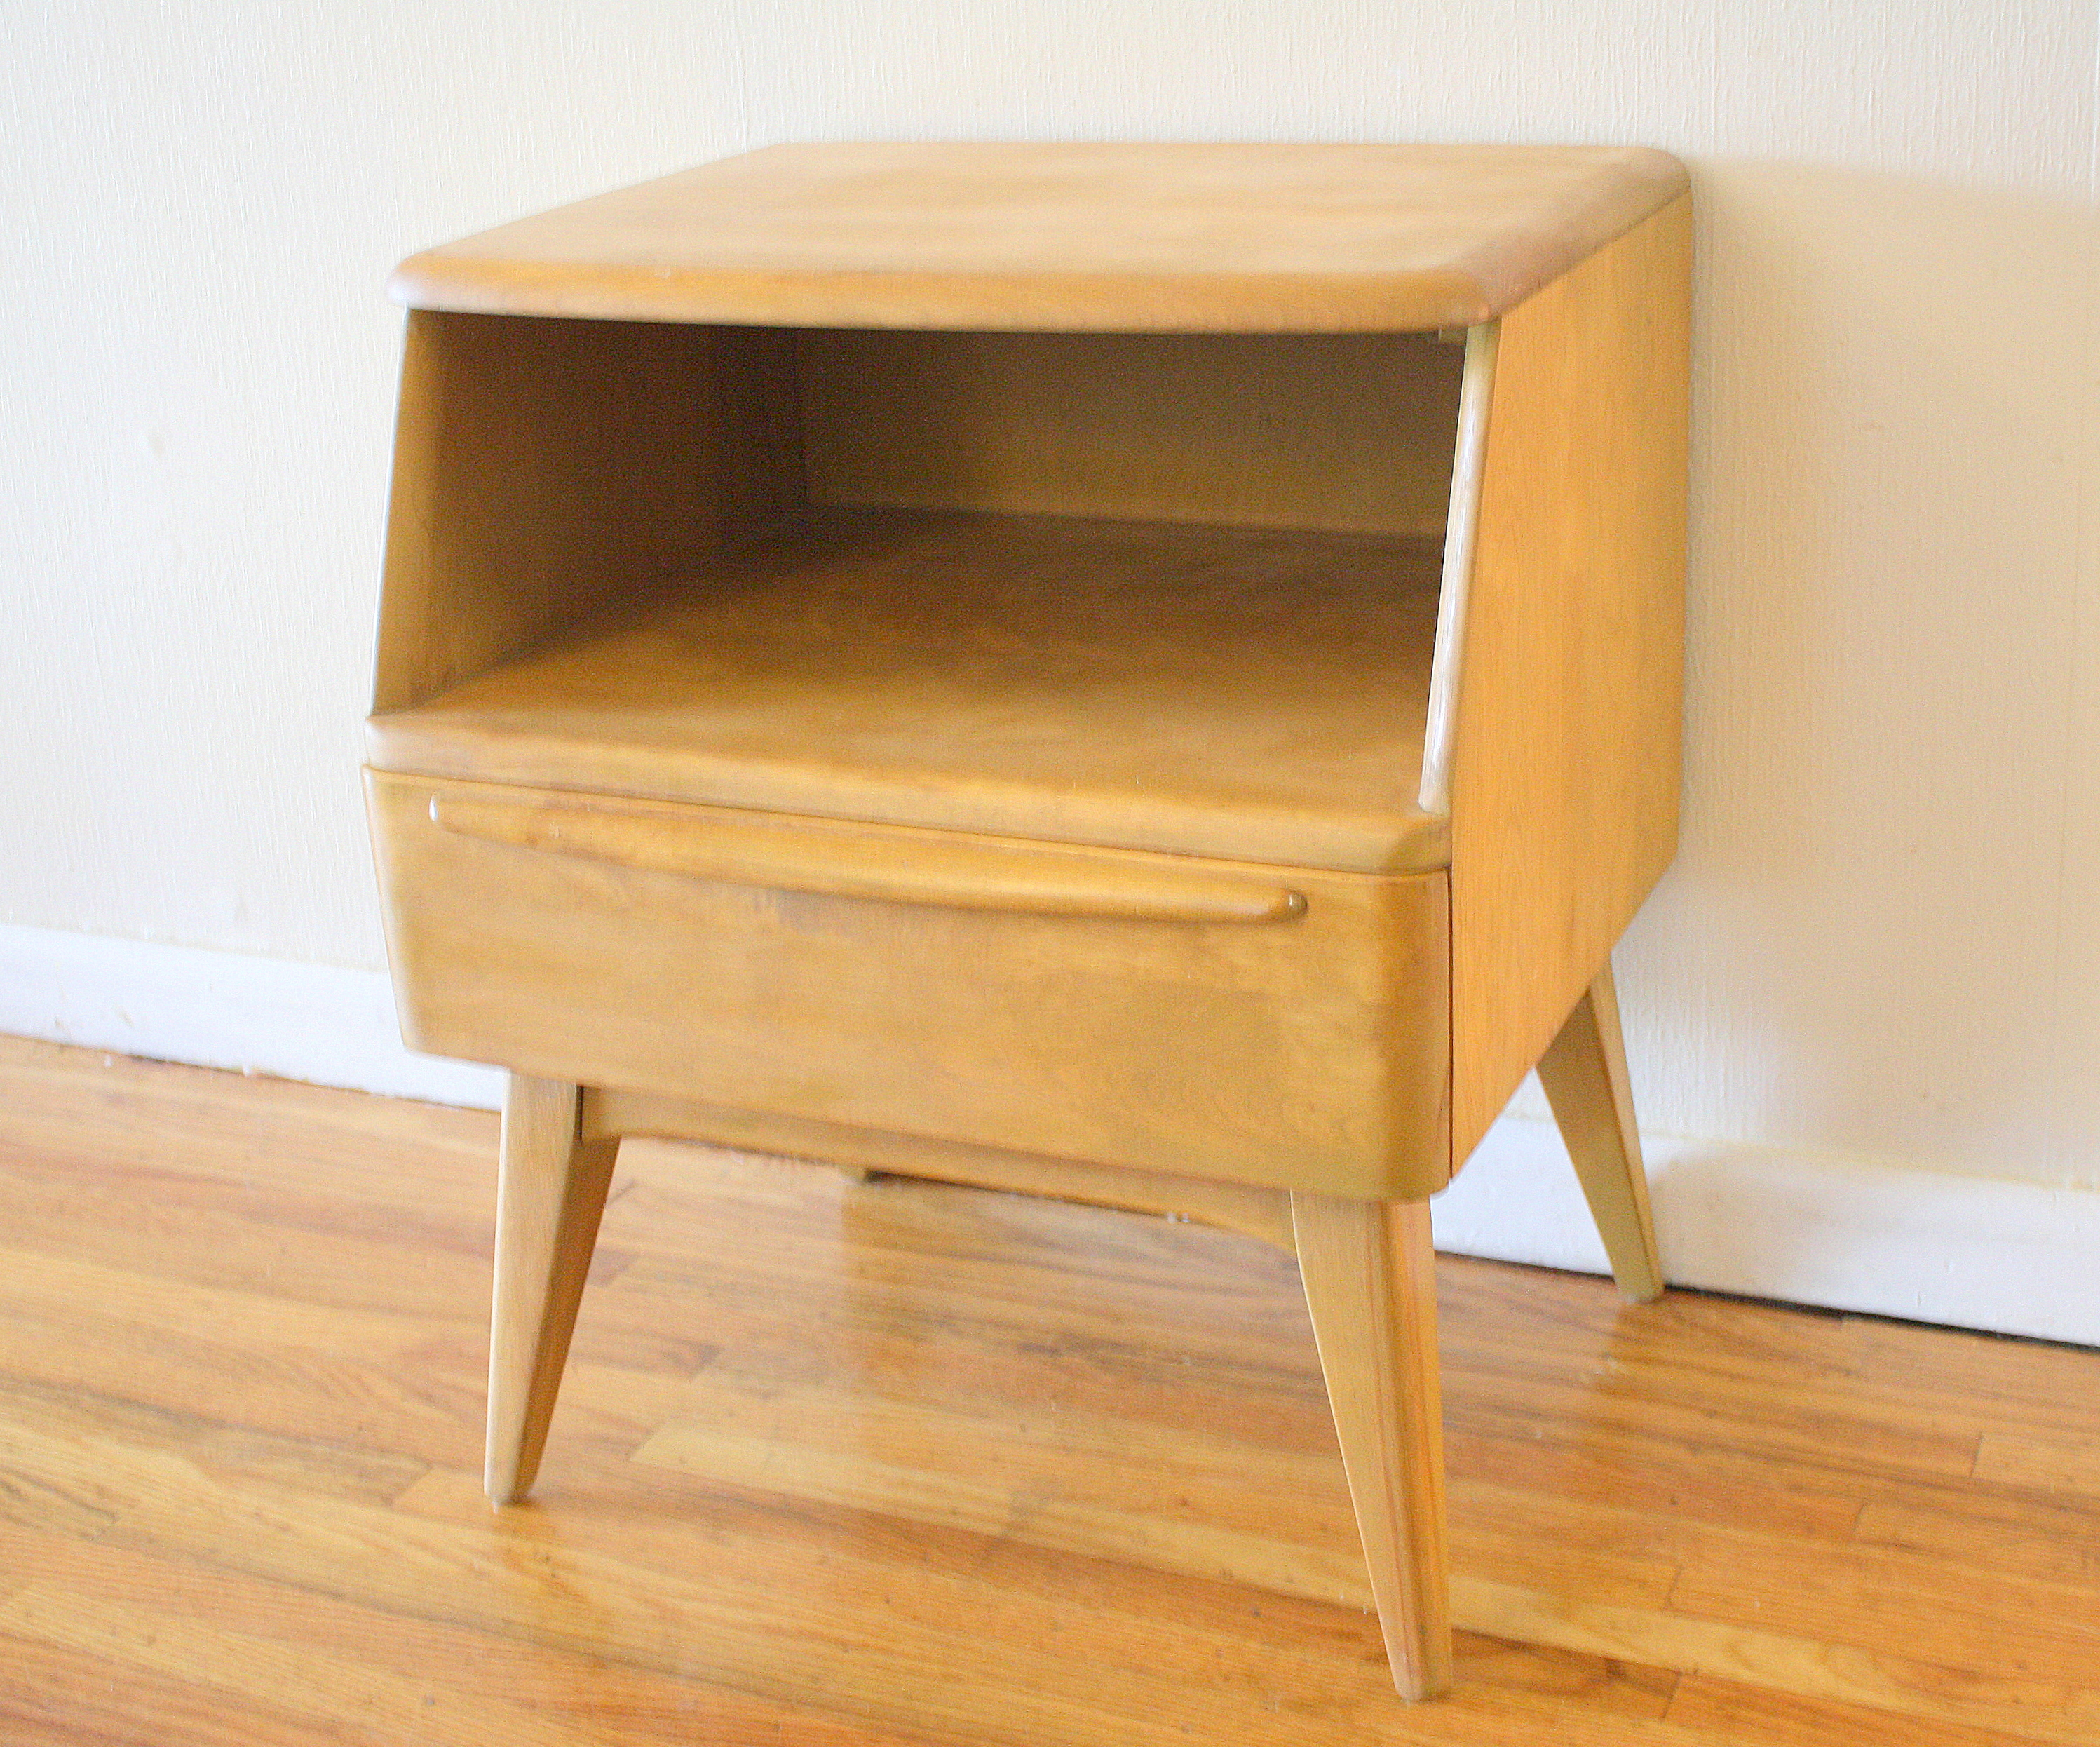 Heywood wakefield side table 1 picked vintage heywood wakefield side table 1 geotapseo Image collections